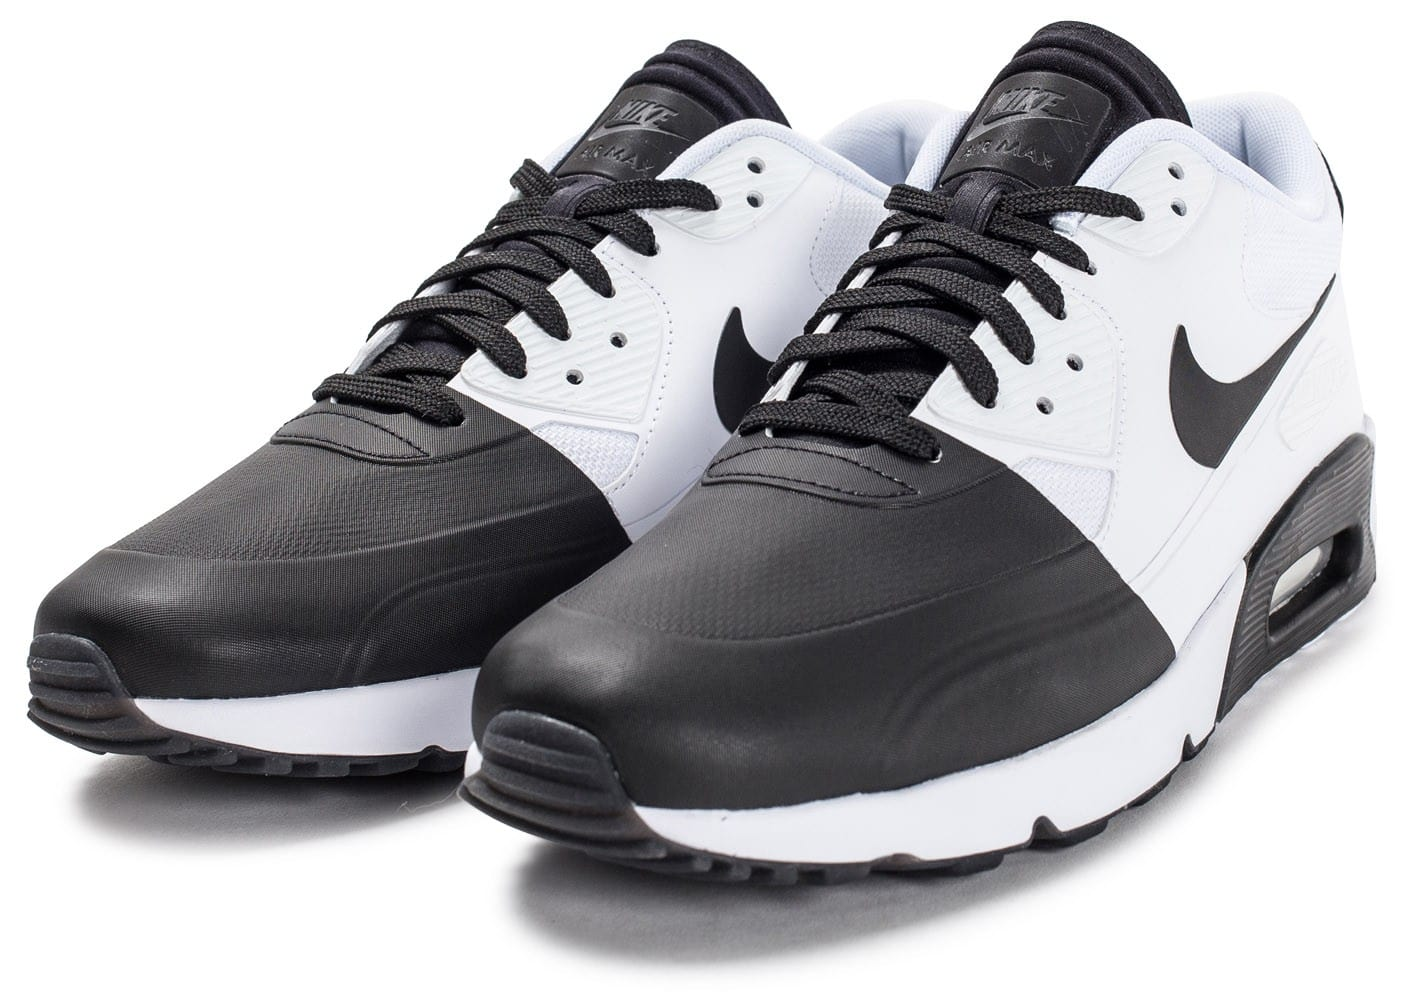 soldes nike air max 90 ultra 2 0 se blanche et noire chaussures homme chausport. Black Bedroom Furniture Sets. Home Design Ideas